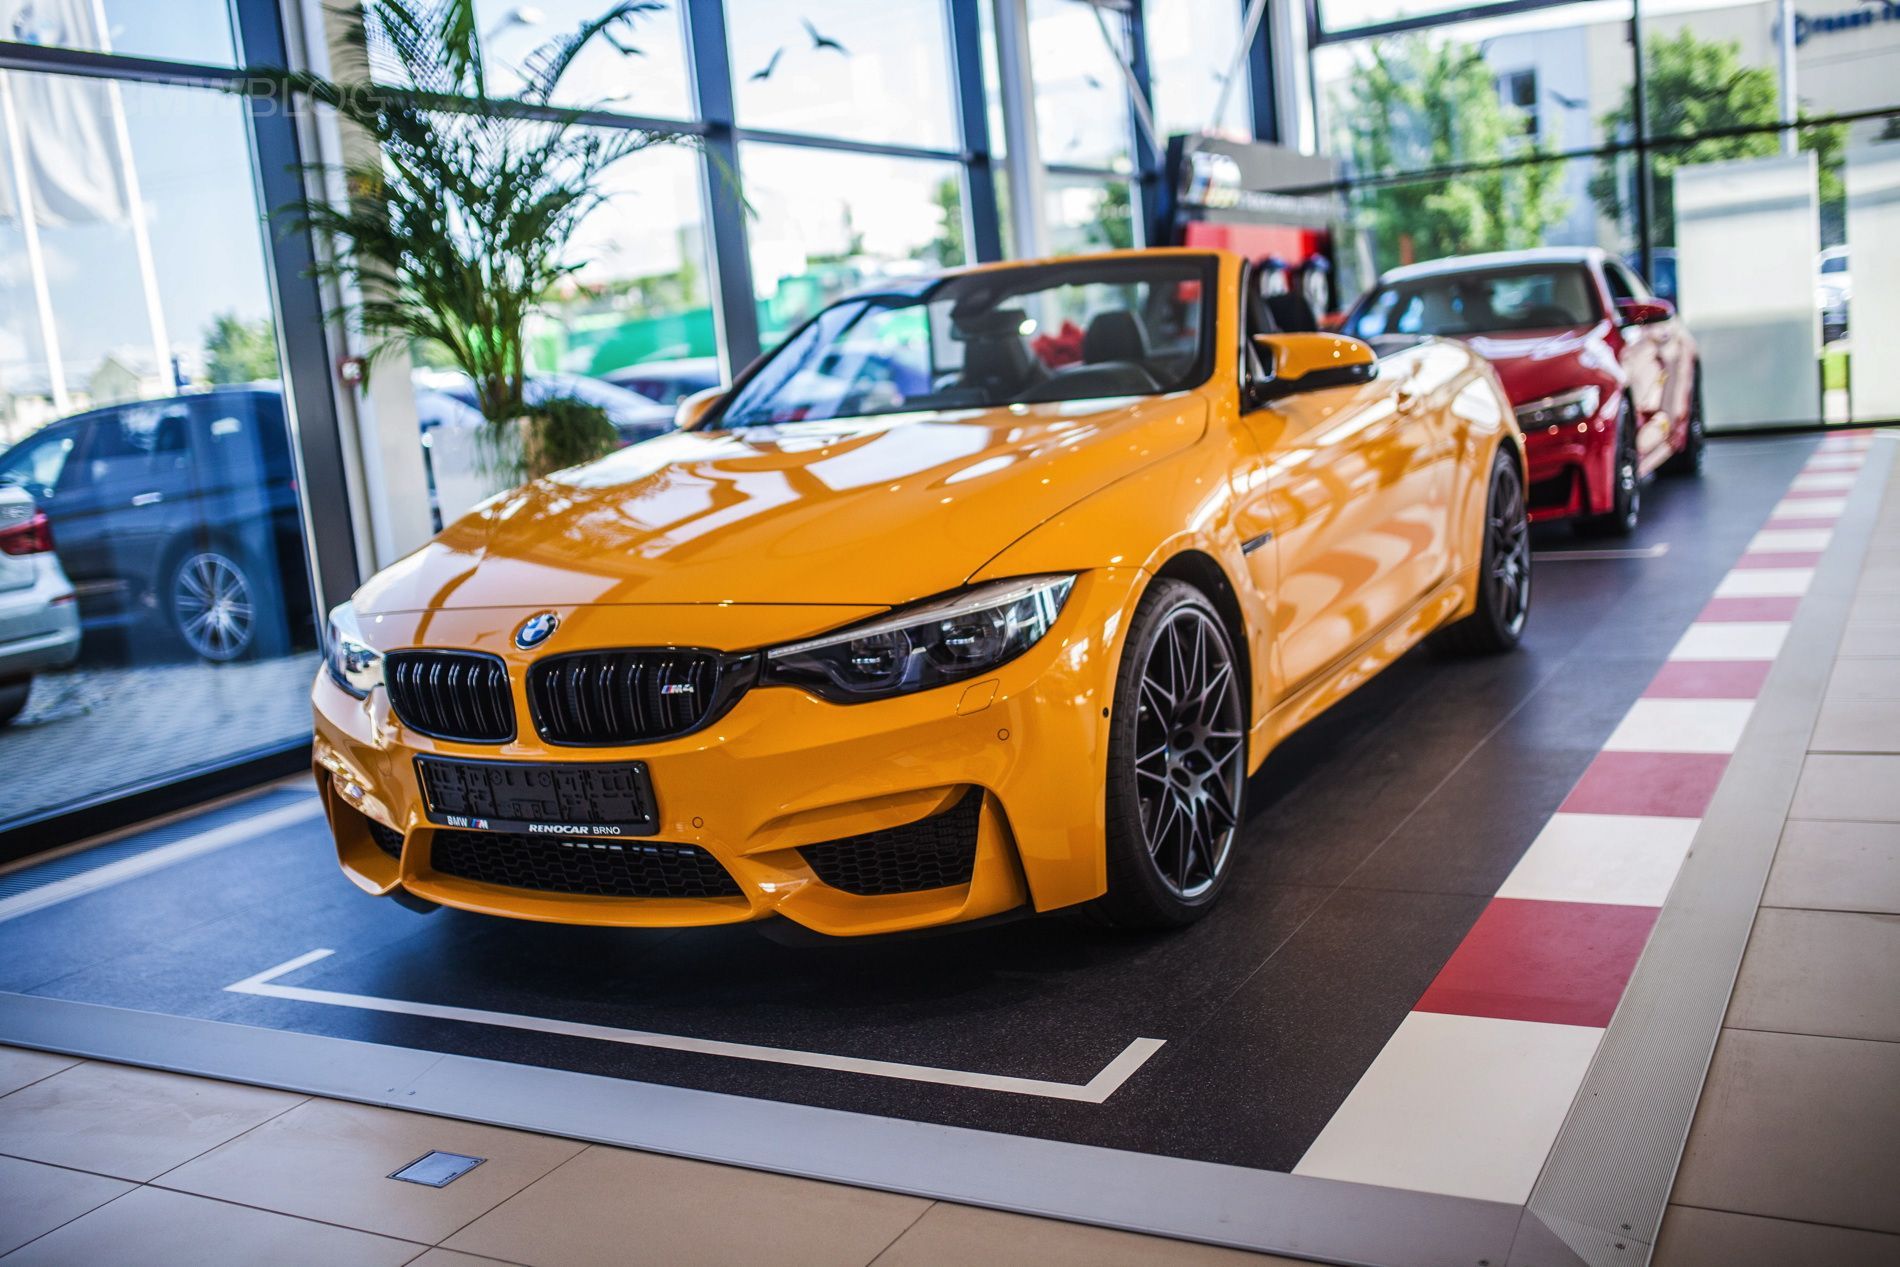 Macao Blue Vs Mandarin Ii Bmw M4 Convertible 30 Jahre Edition Is Finally In Showrooms Bmw Bmw M4 Convertible